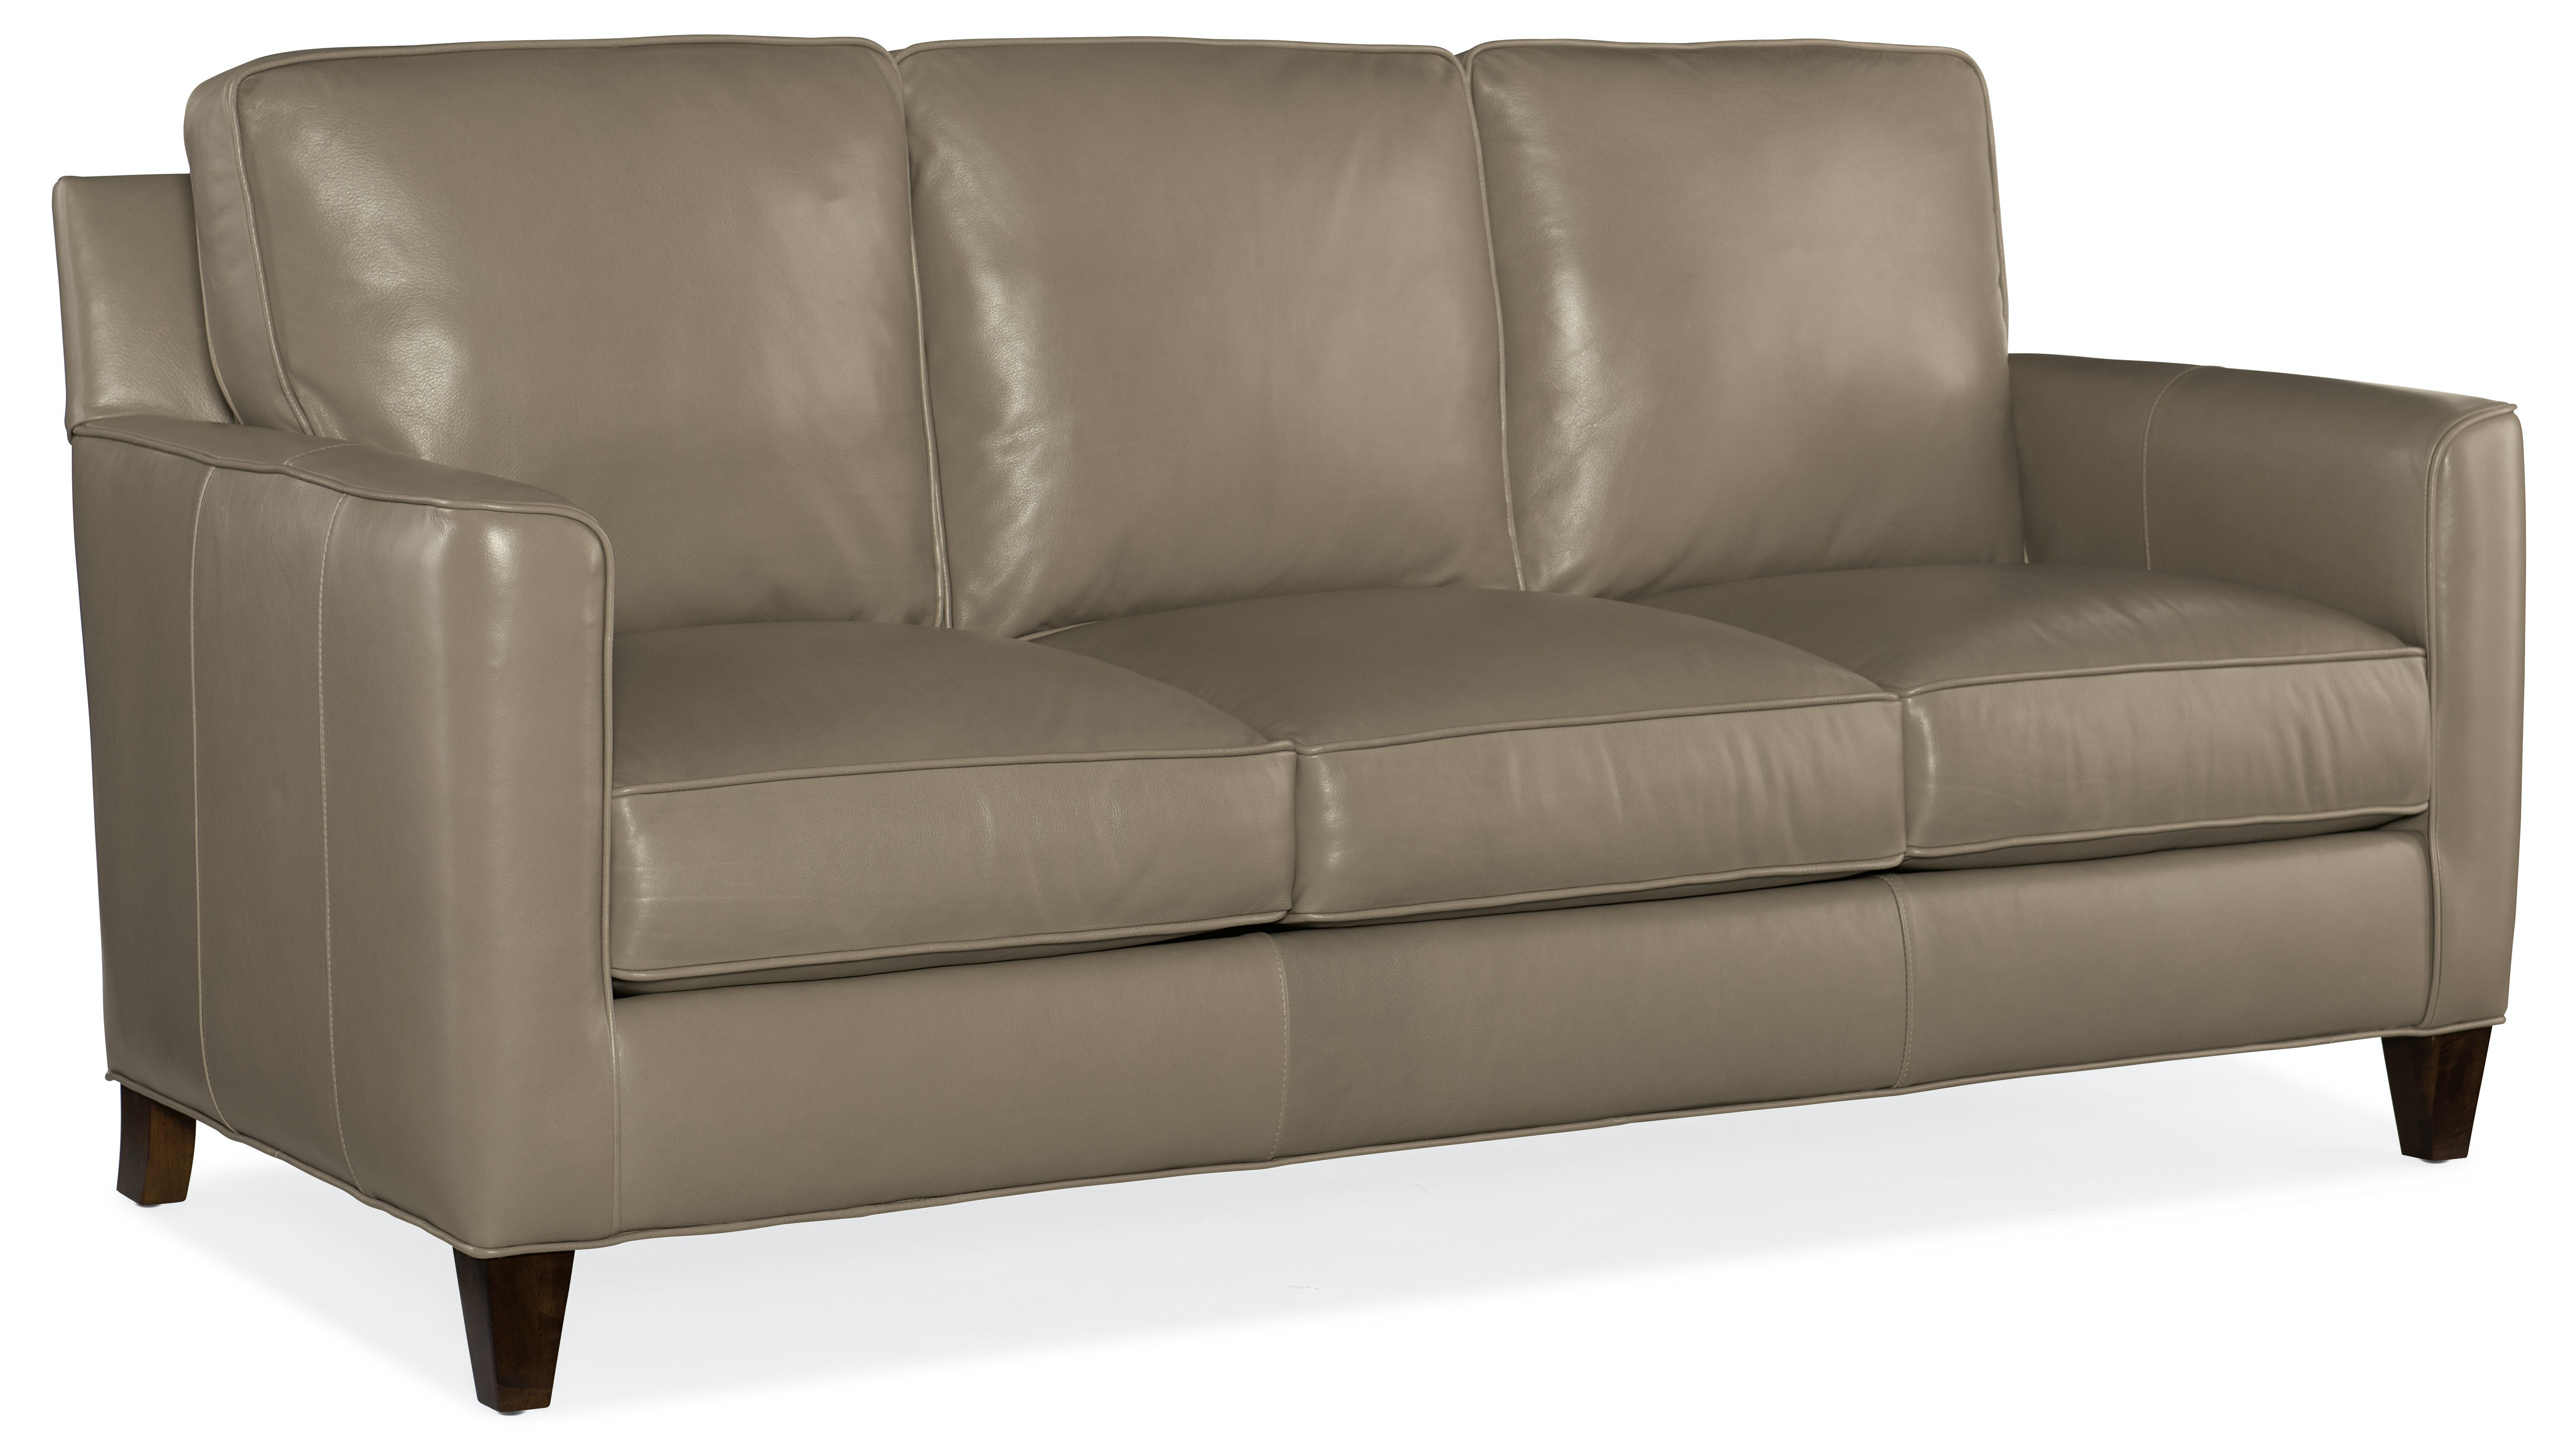 Beau Bradington Young Living Room Yorba Stationary Sofa 8 Way Tie 508 95   Bradington  Young   Hickory, NC